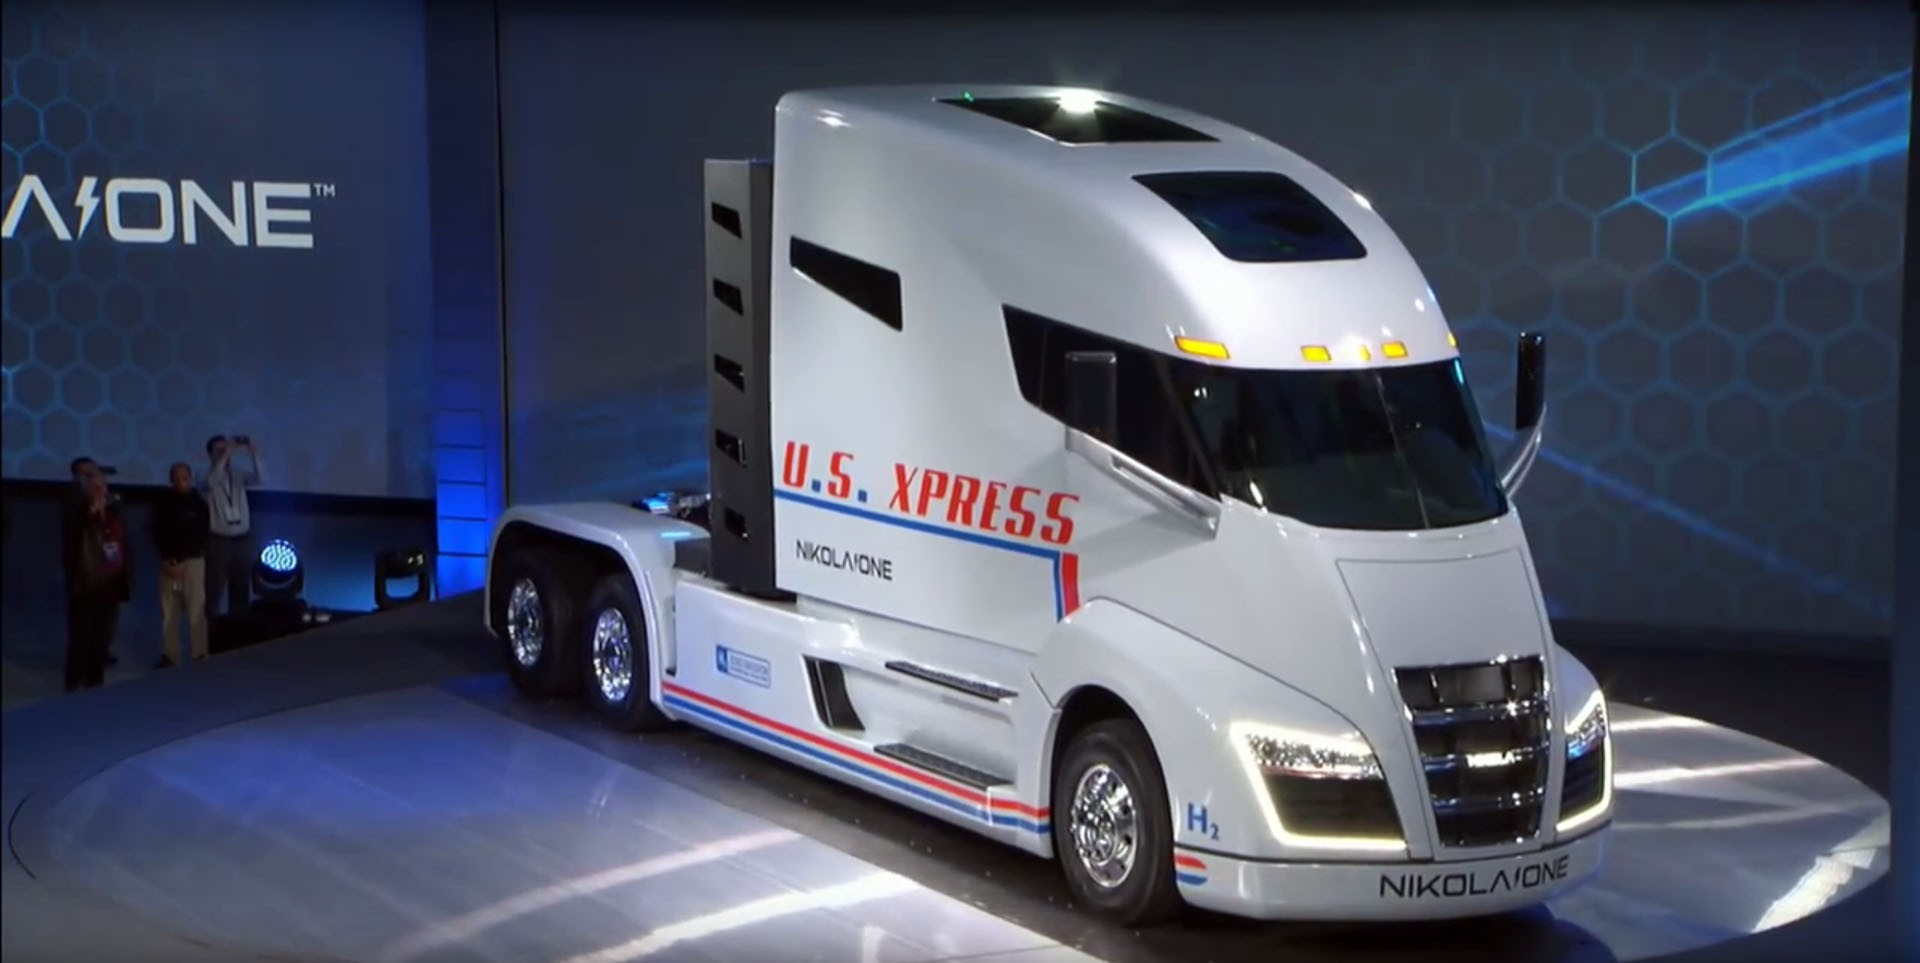 Tesla accused of copycat semi truck design in $2 billion patent lawsuit